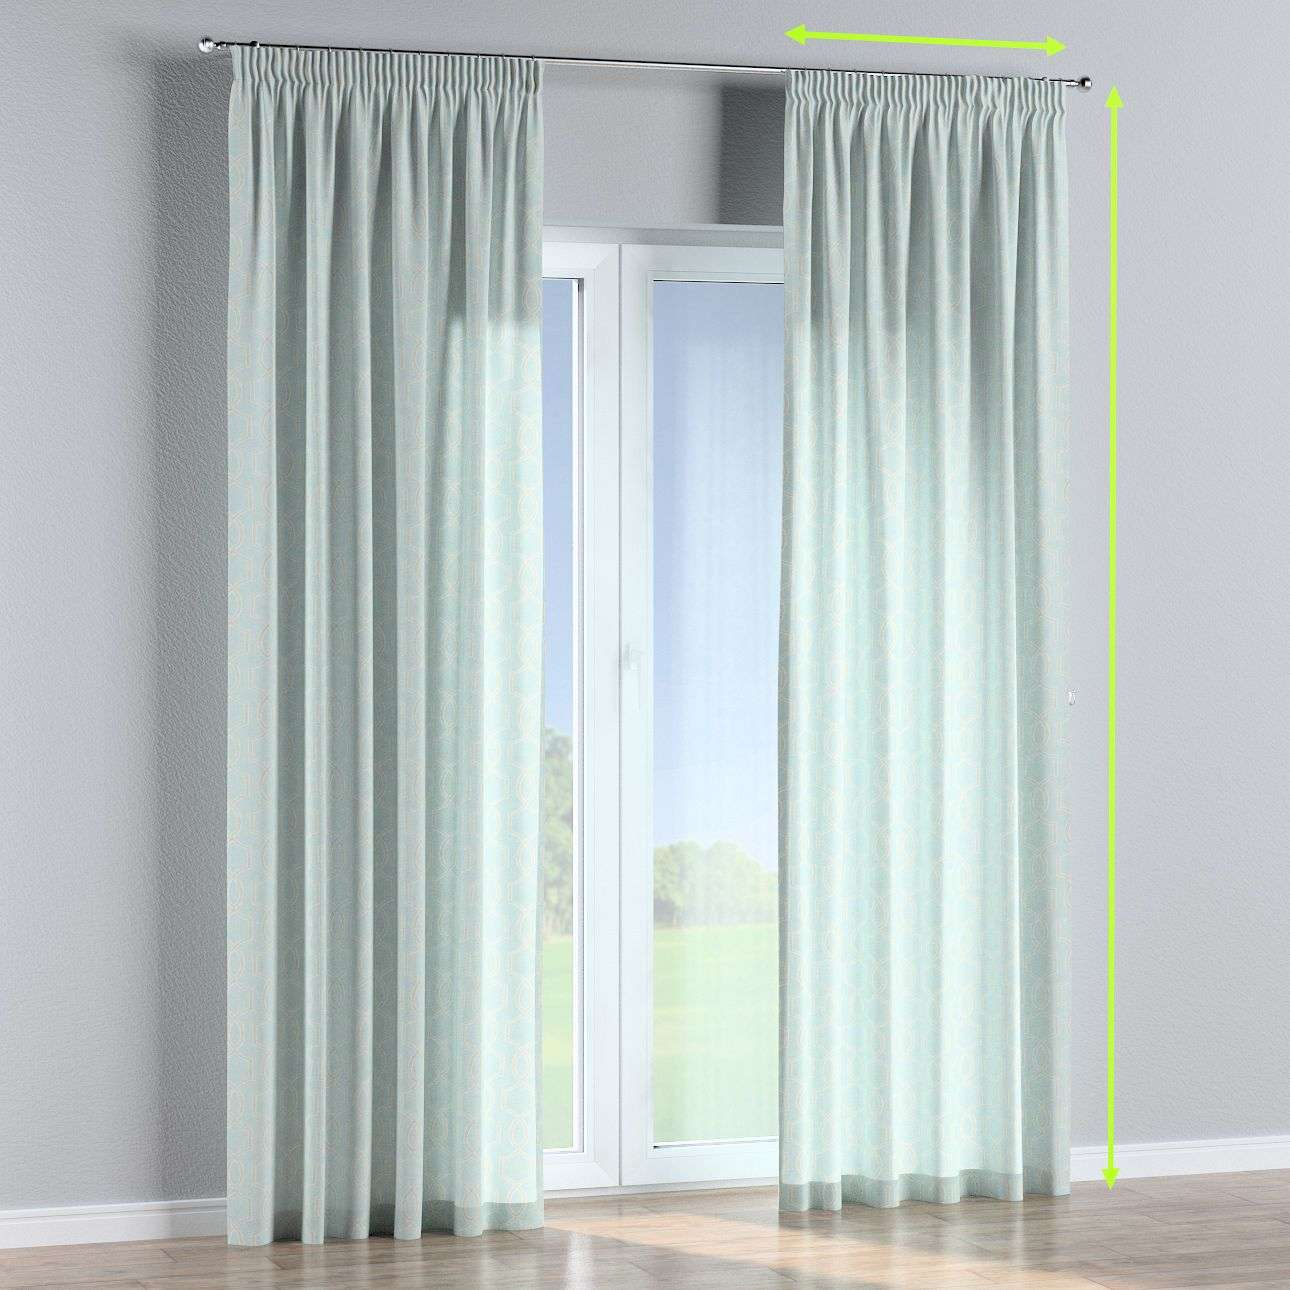 Pencil pleat curtains in collection Comics/Geometrical, fabric: 141-24